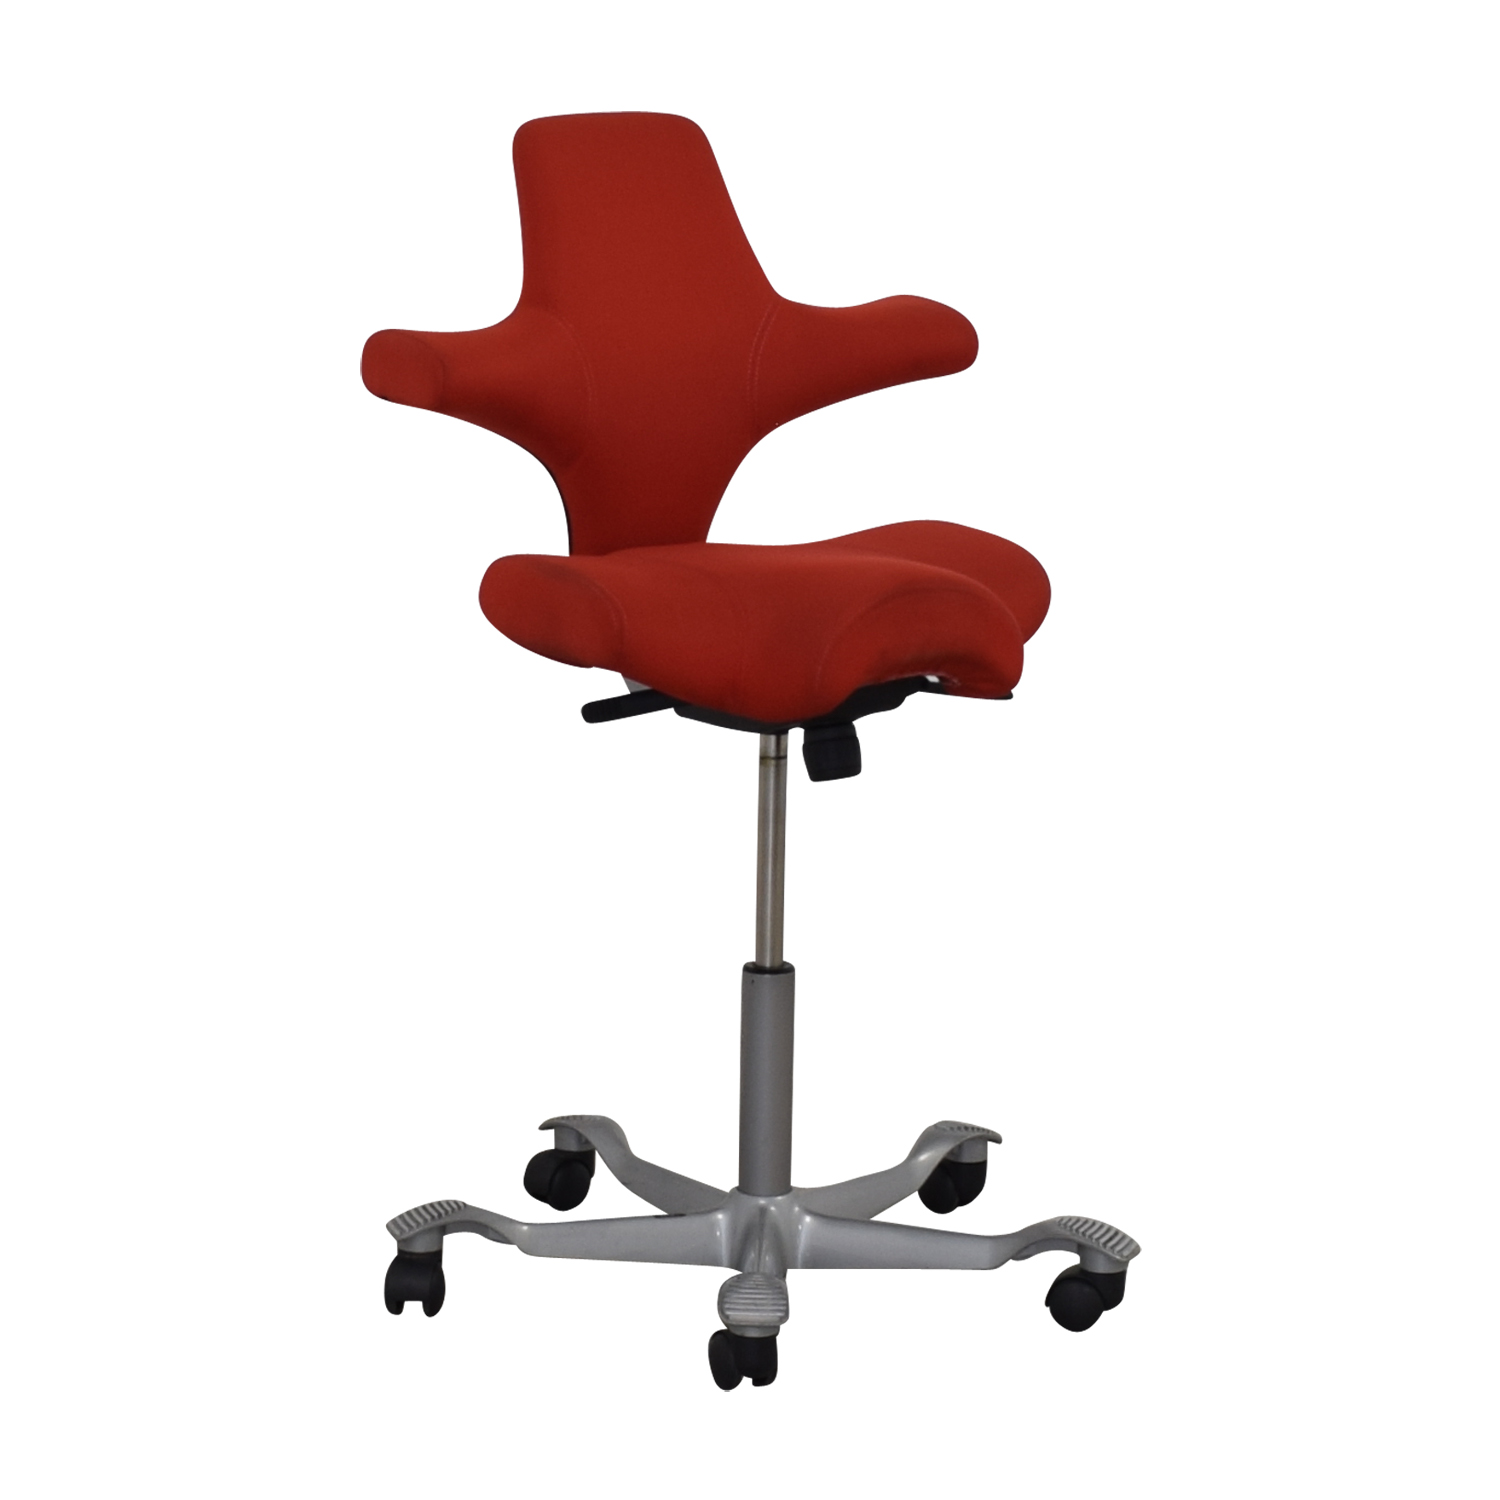 HÅG Capisco Office Chair / Home Office Chairs